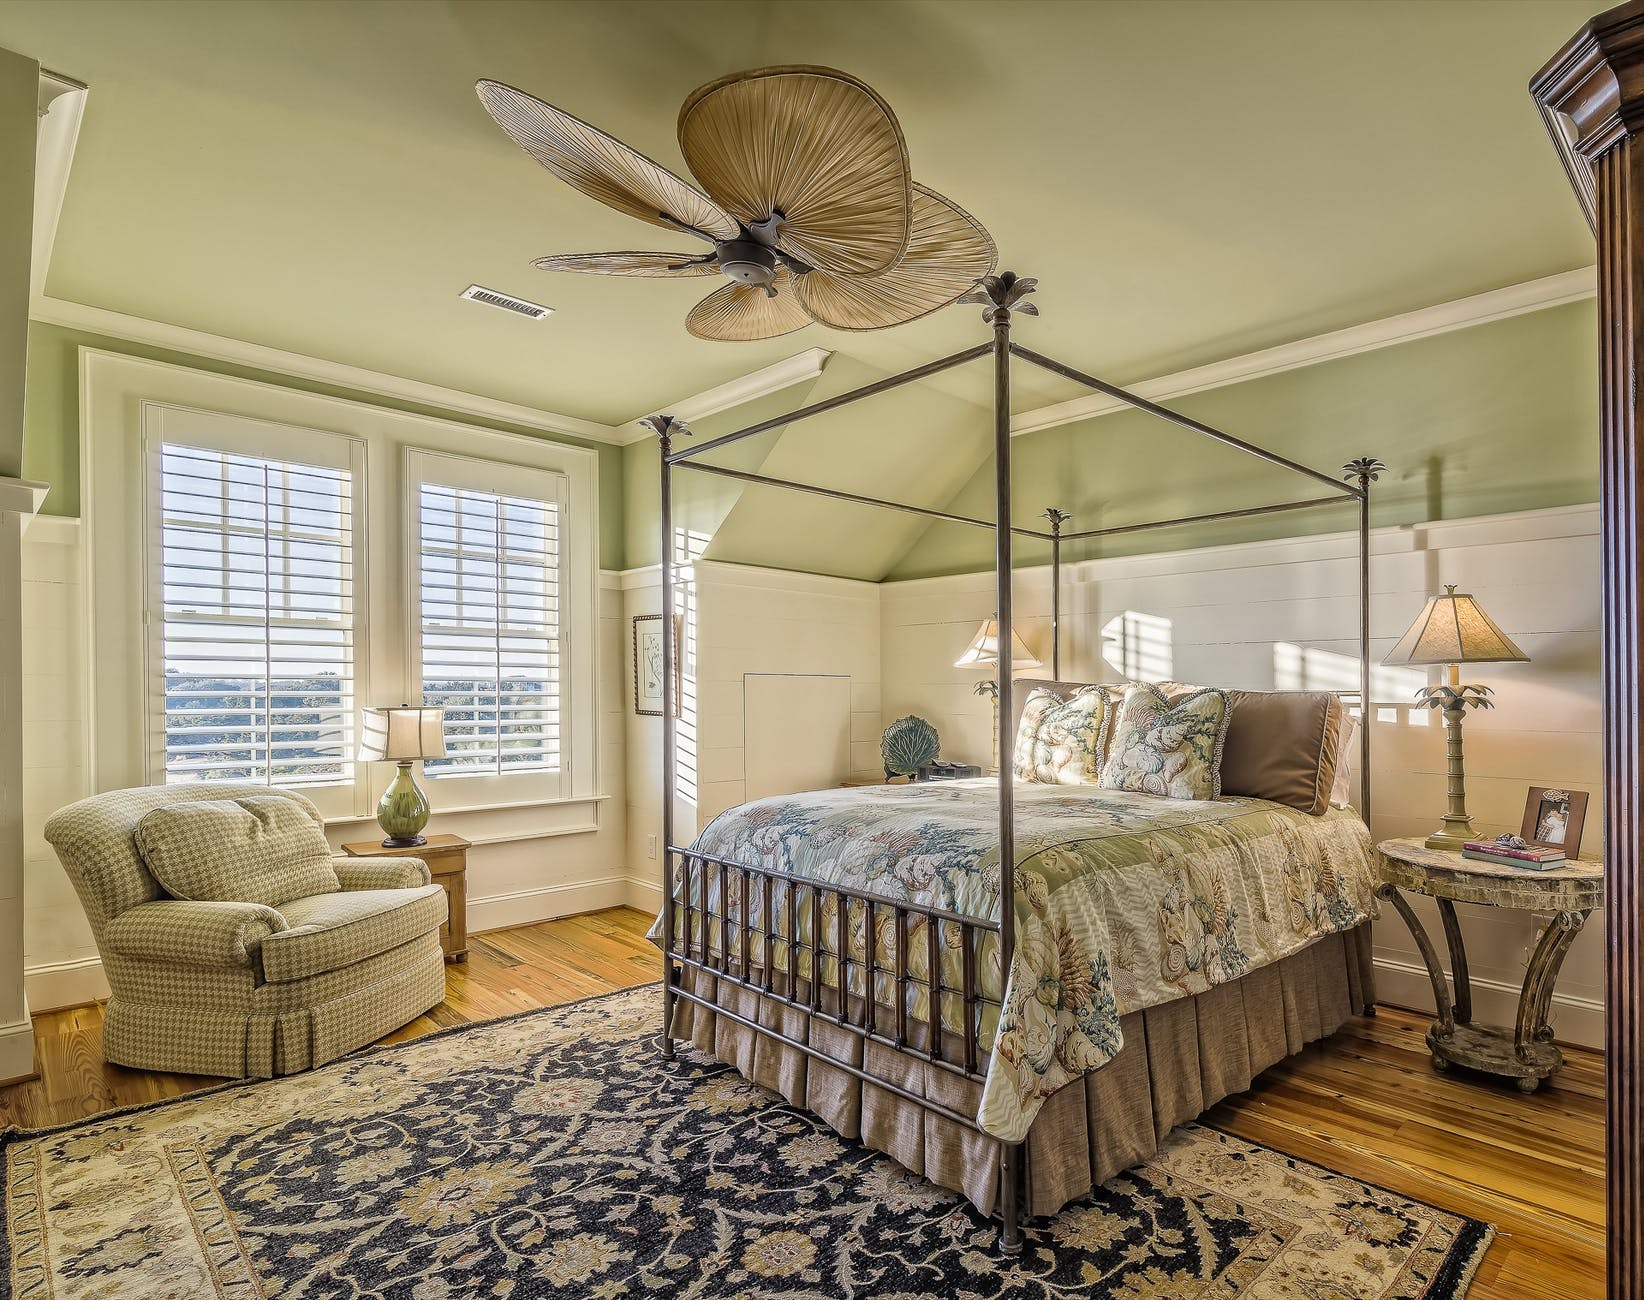 small sizes types know pin bed before style rooms buying different it frame of beds for frames and